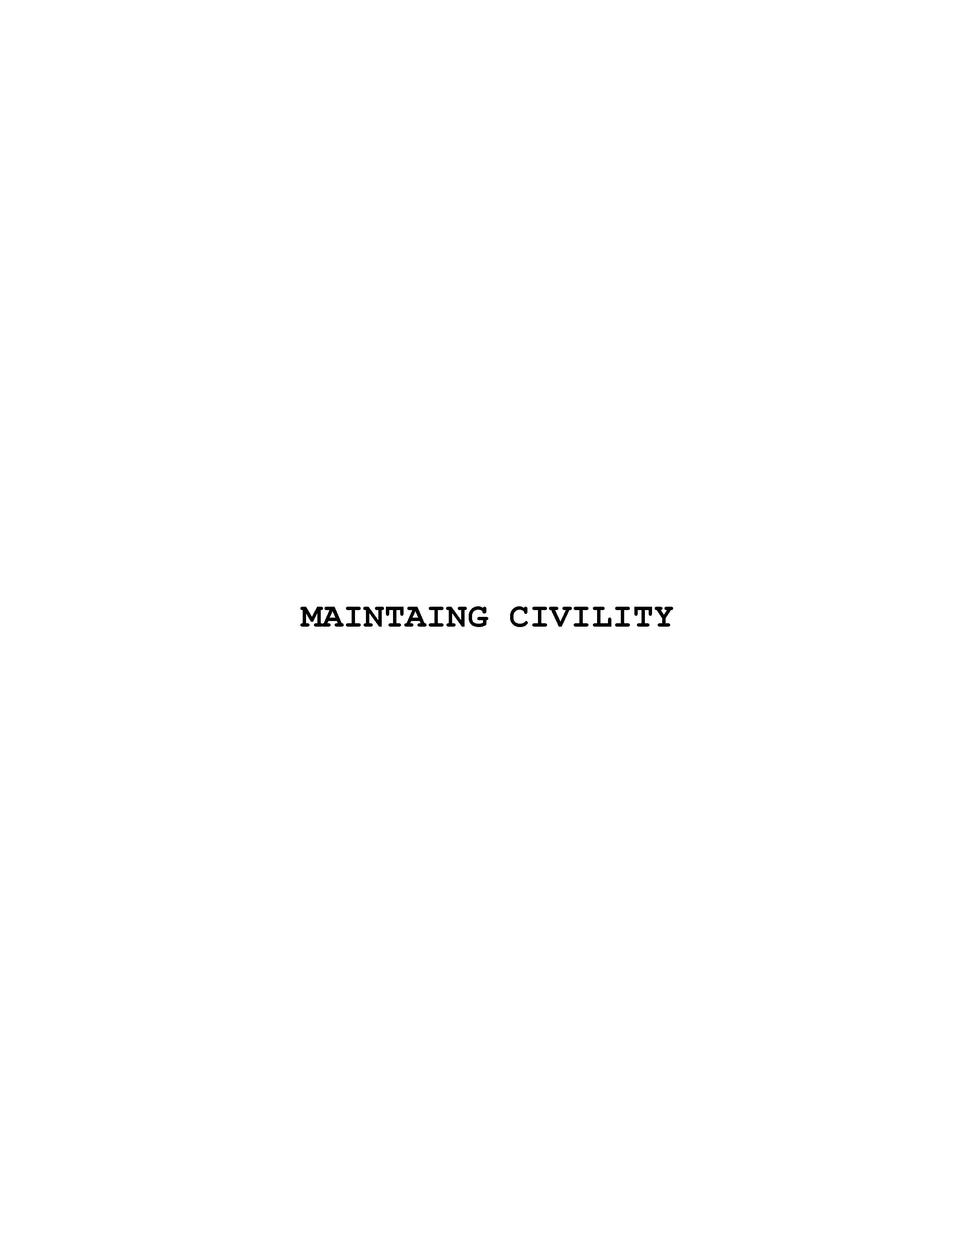 MAINTAING CIVILITY